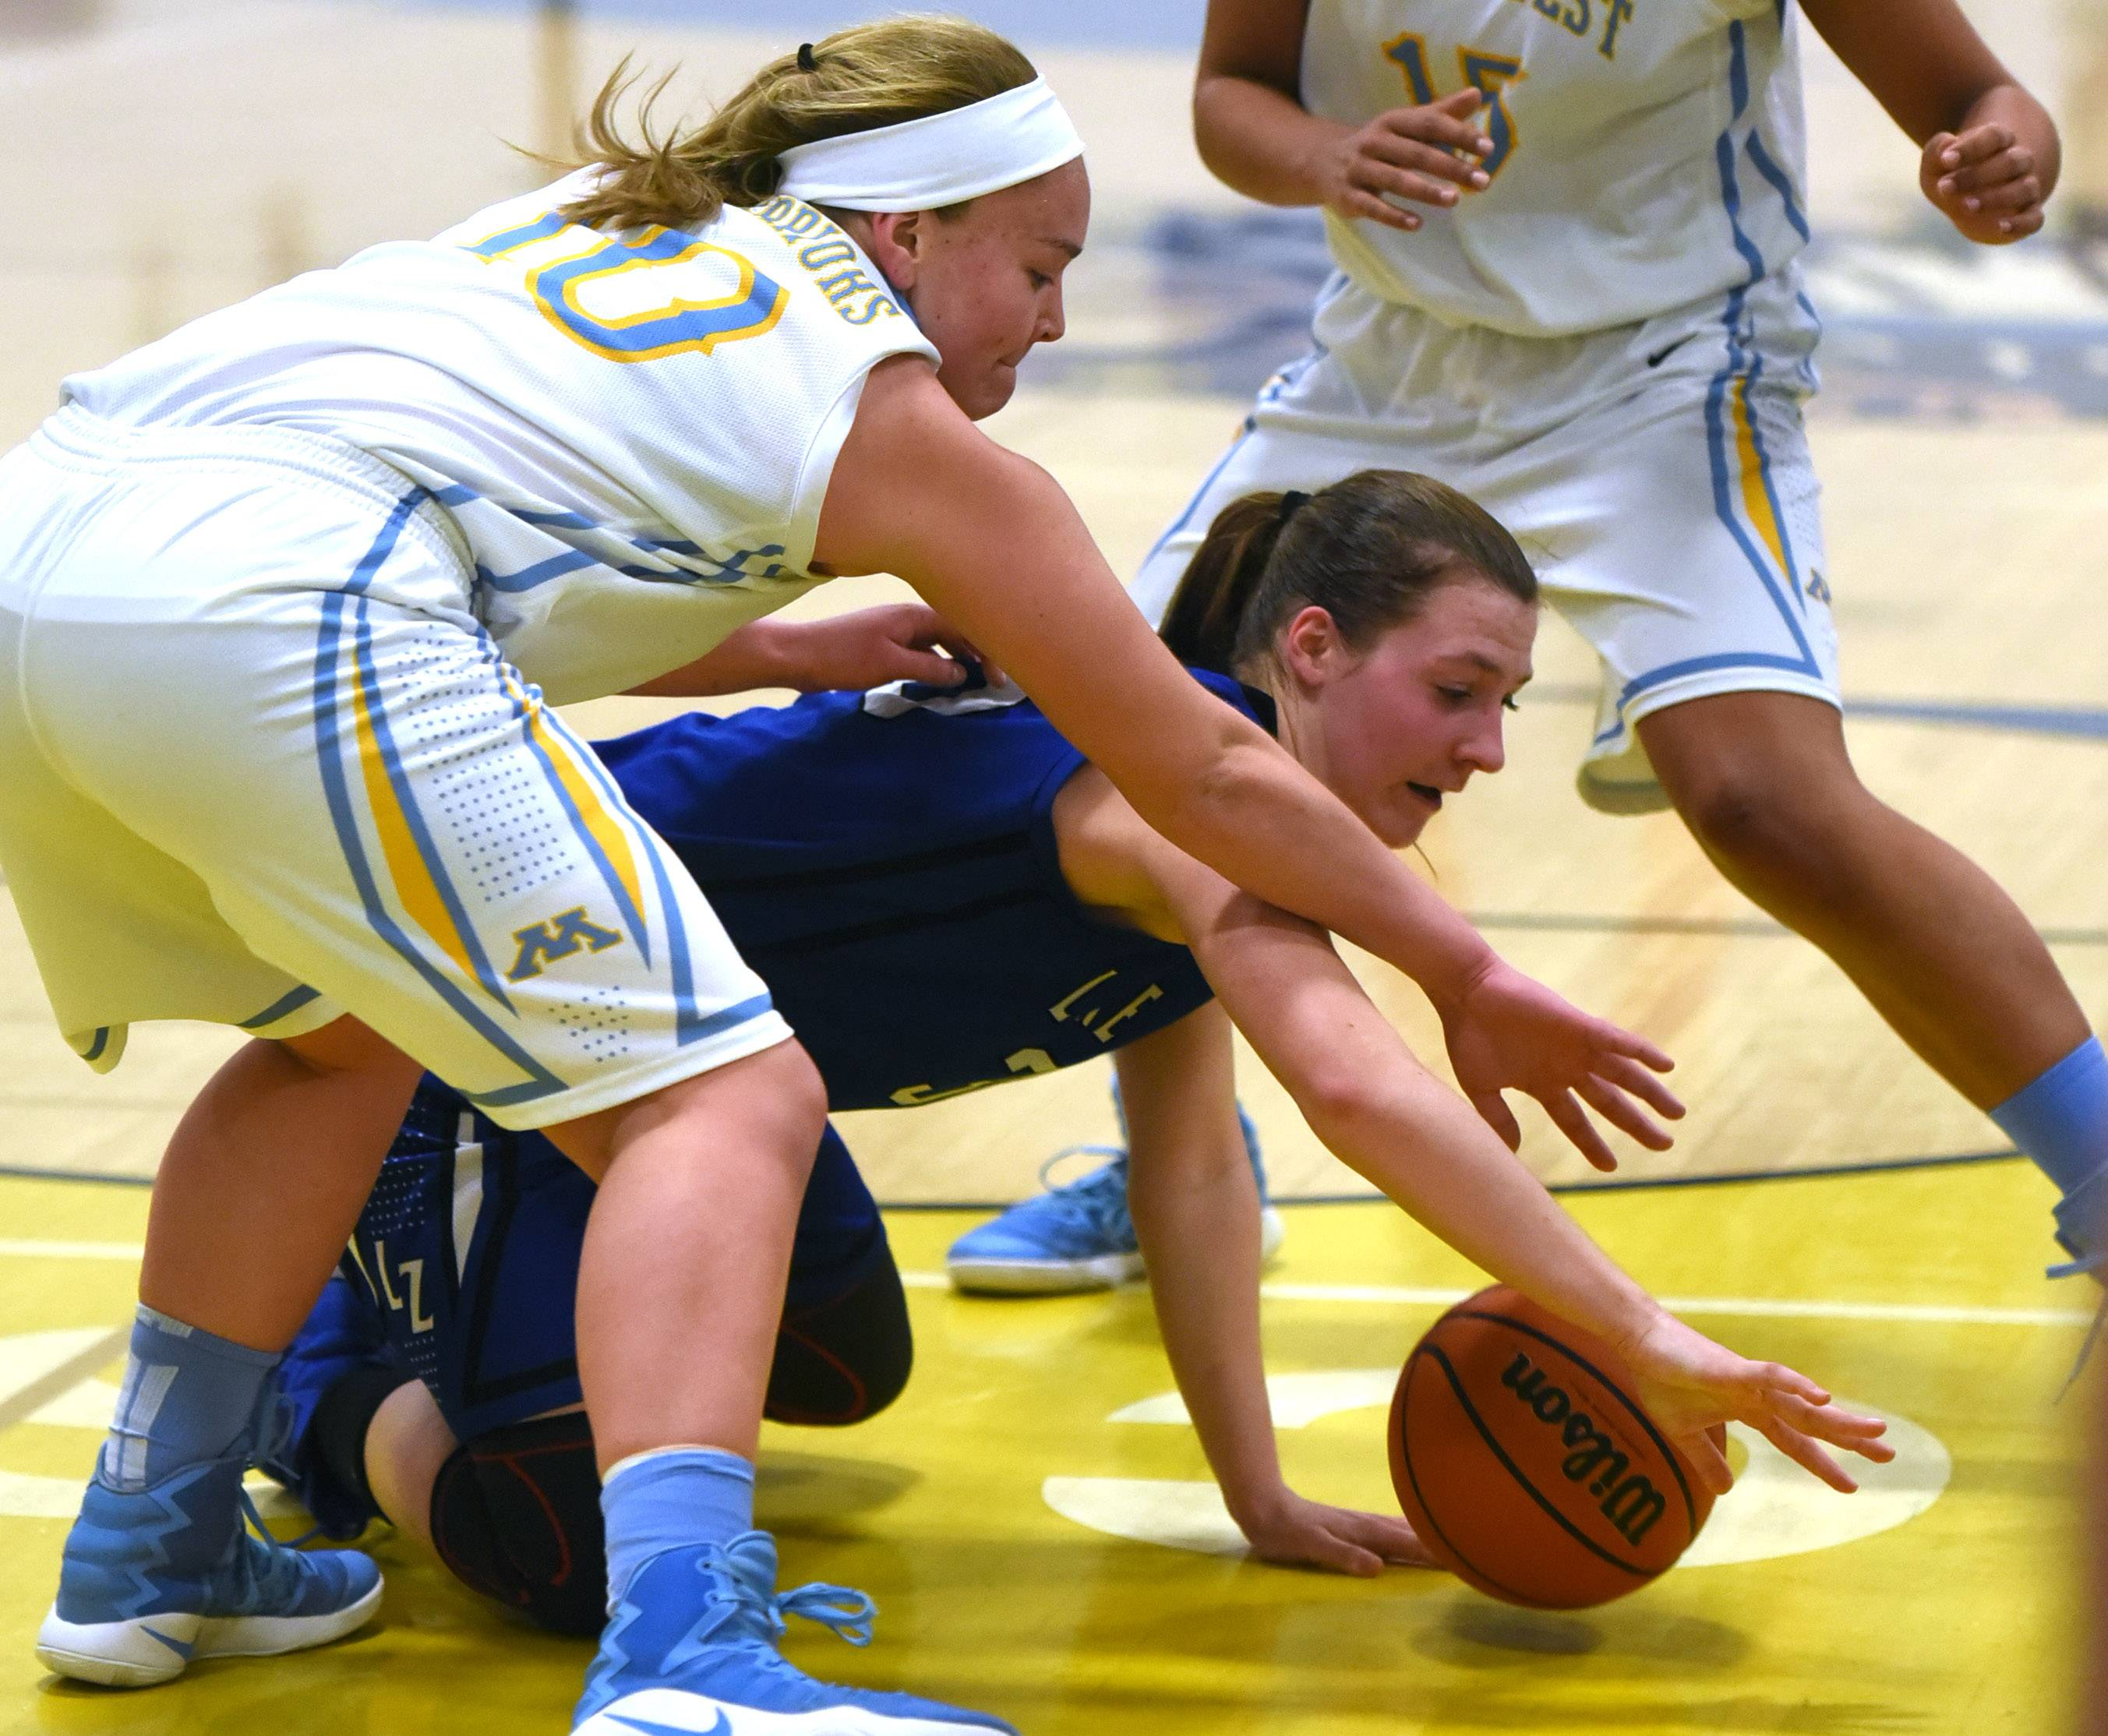 Maine West's Allison Pearson, left, and Lake Zurich's Grace Kinsey chase a loose ball during Monday's game in Des Plaines.